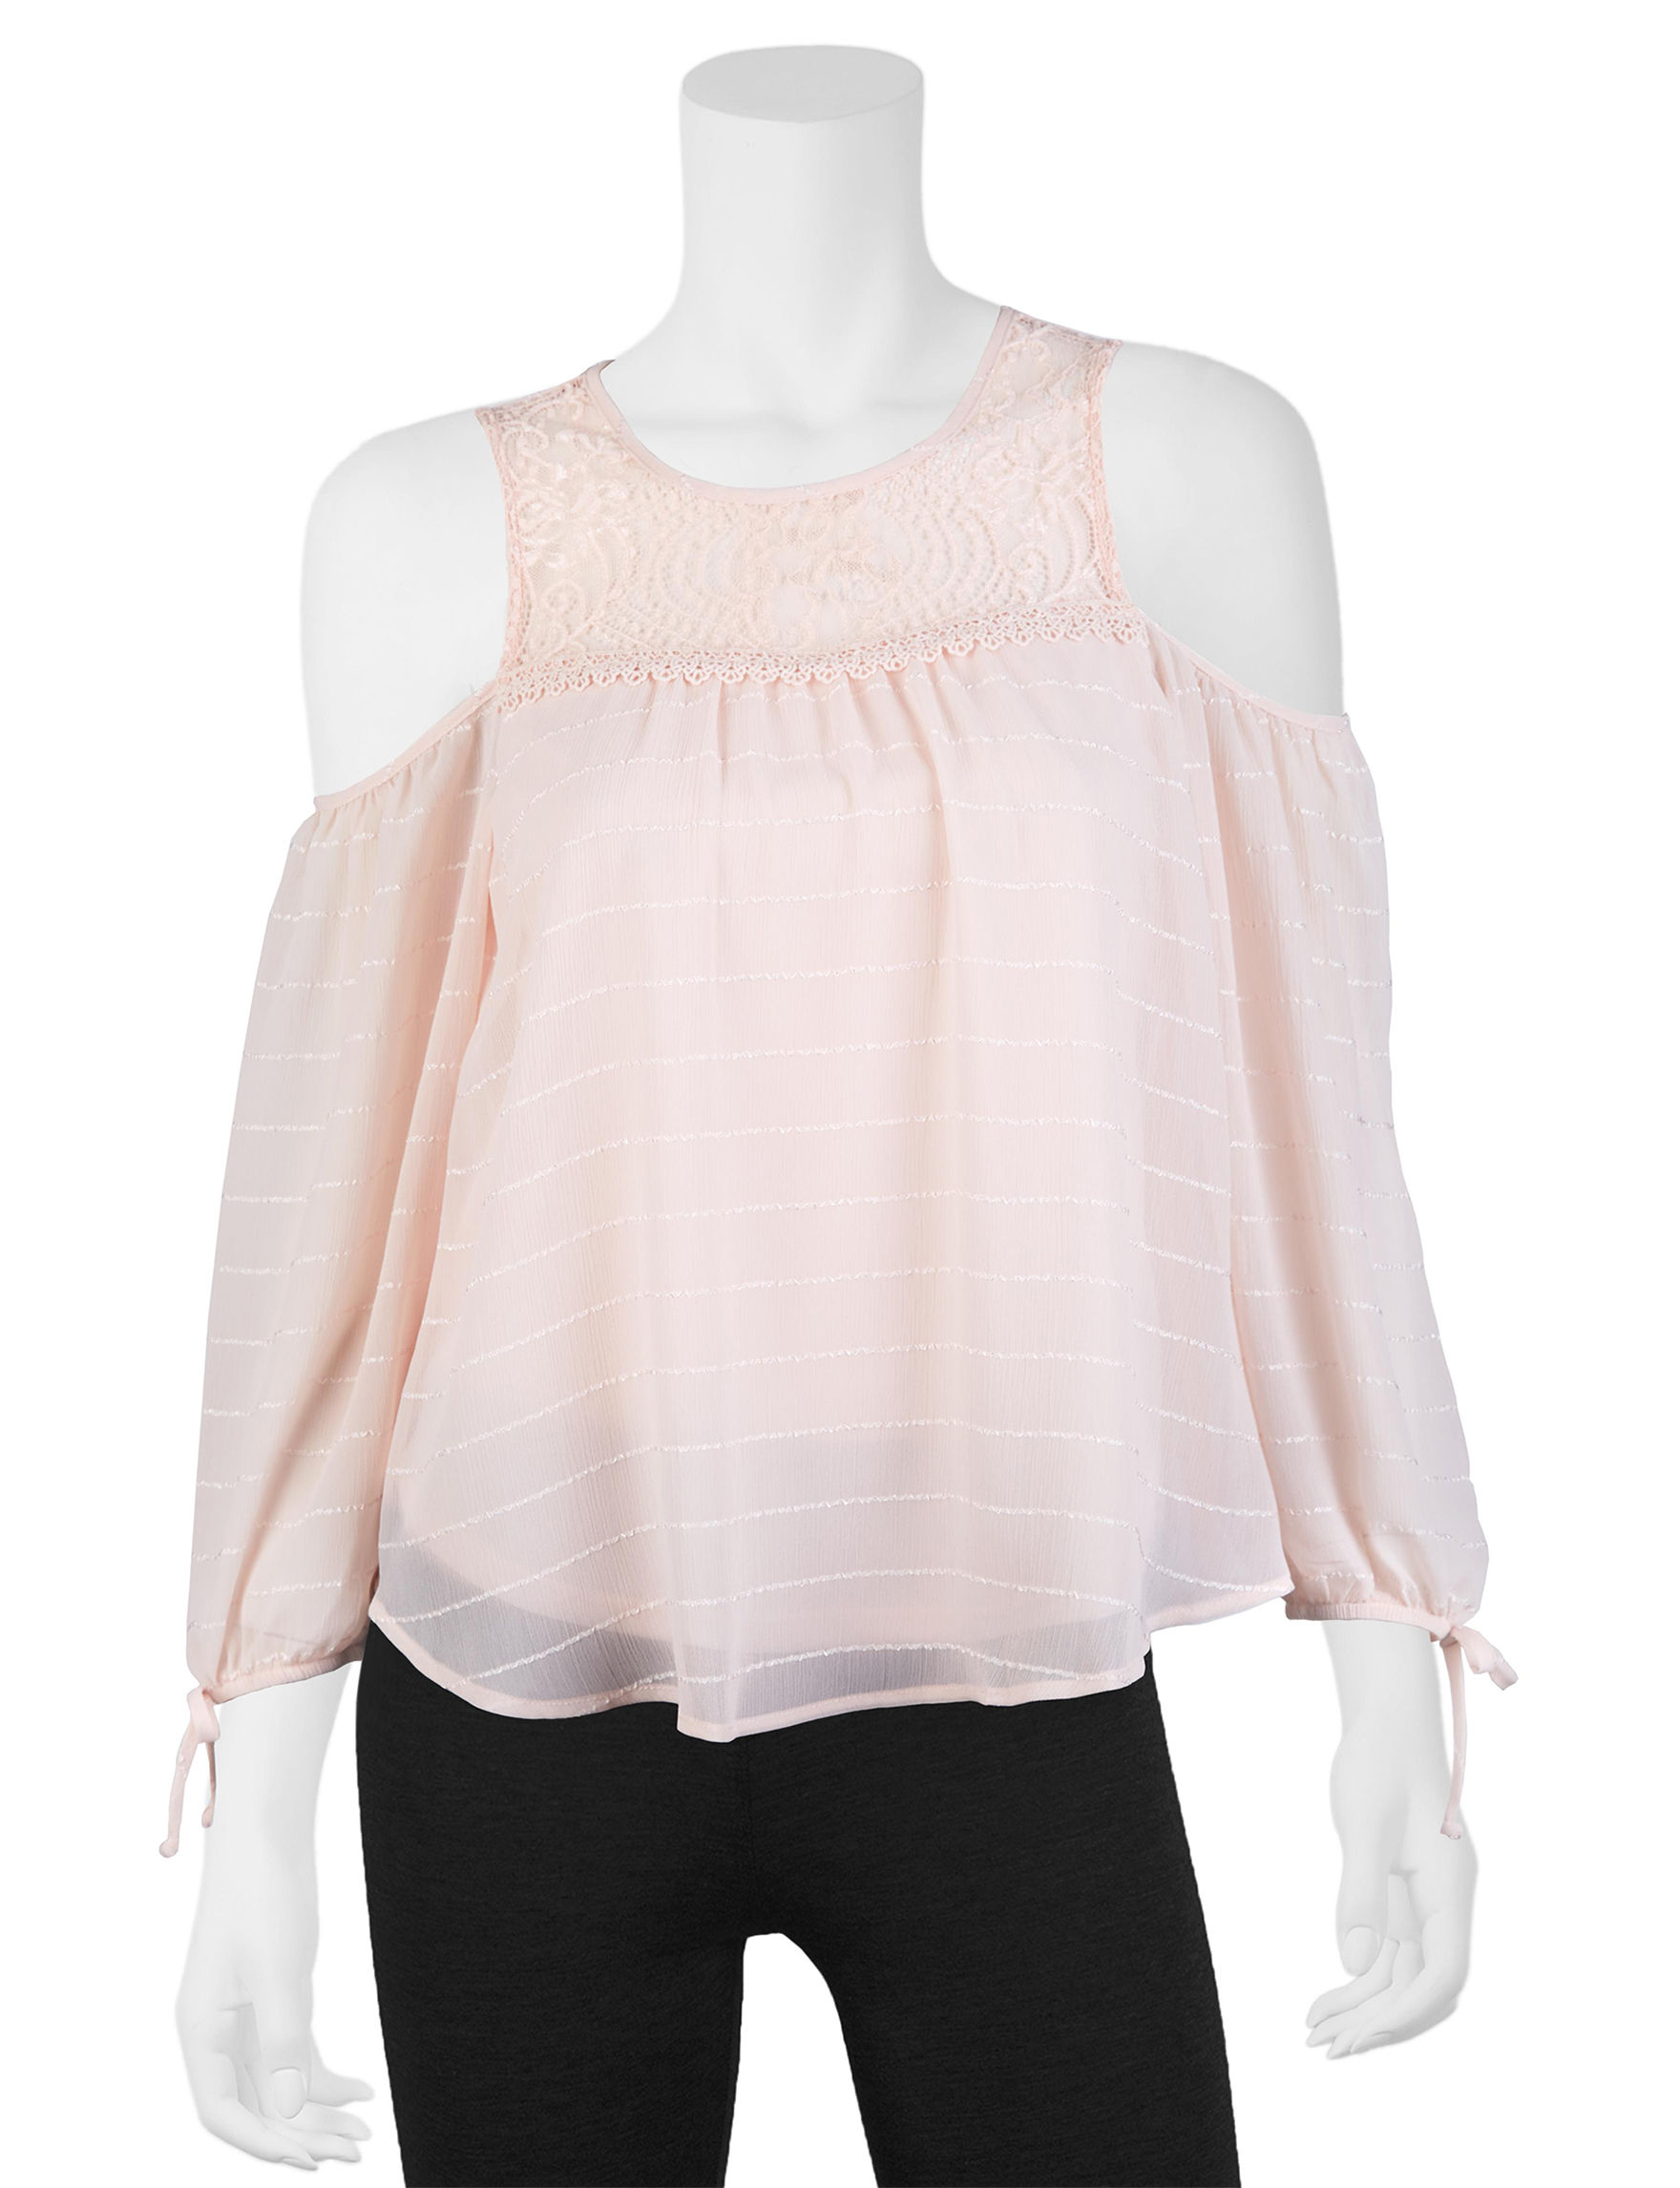 A. Byer Pink Pull-overs Shirts & Blouses